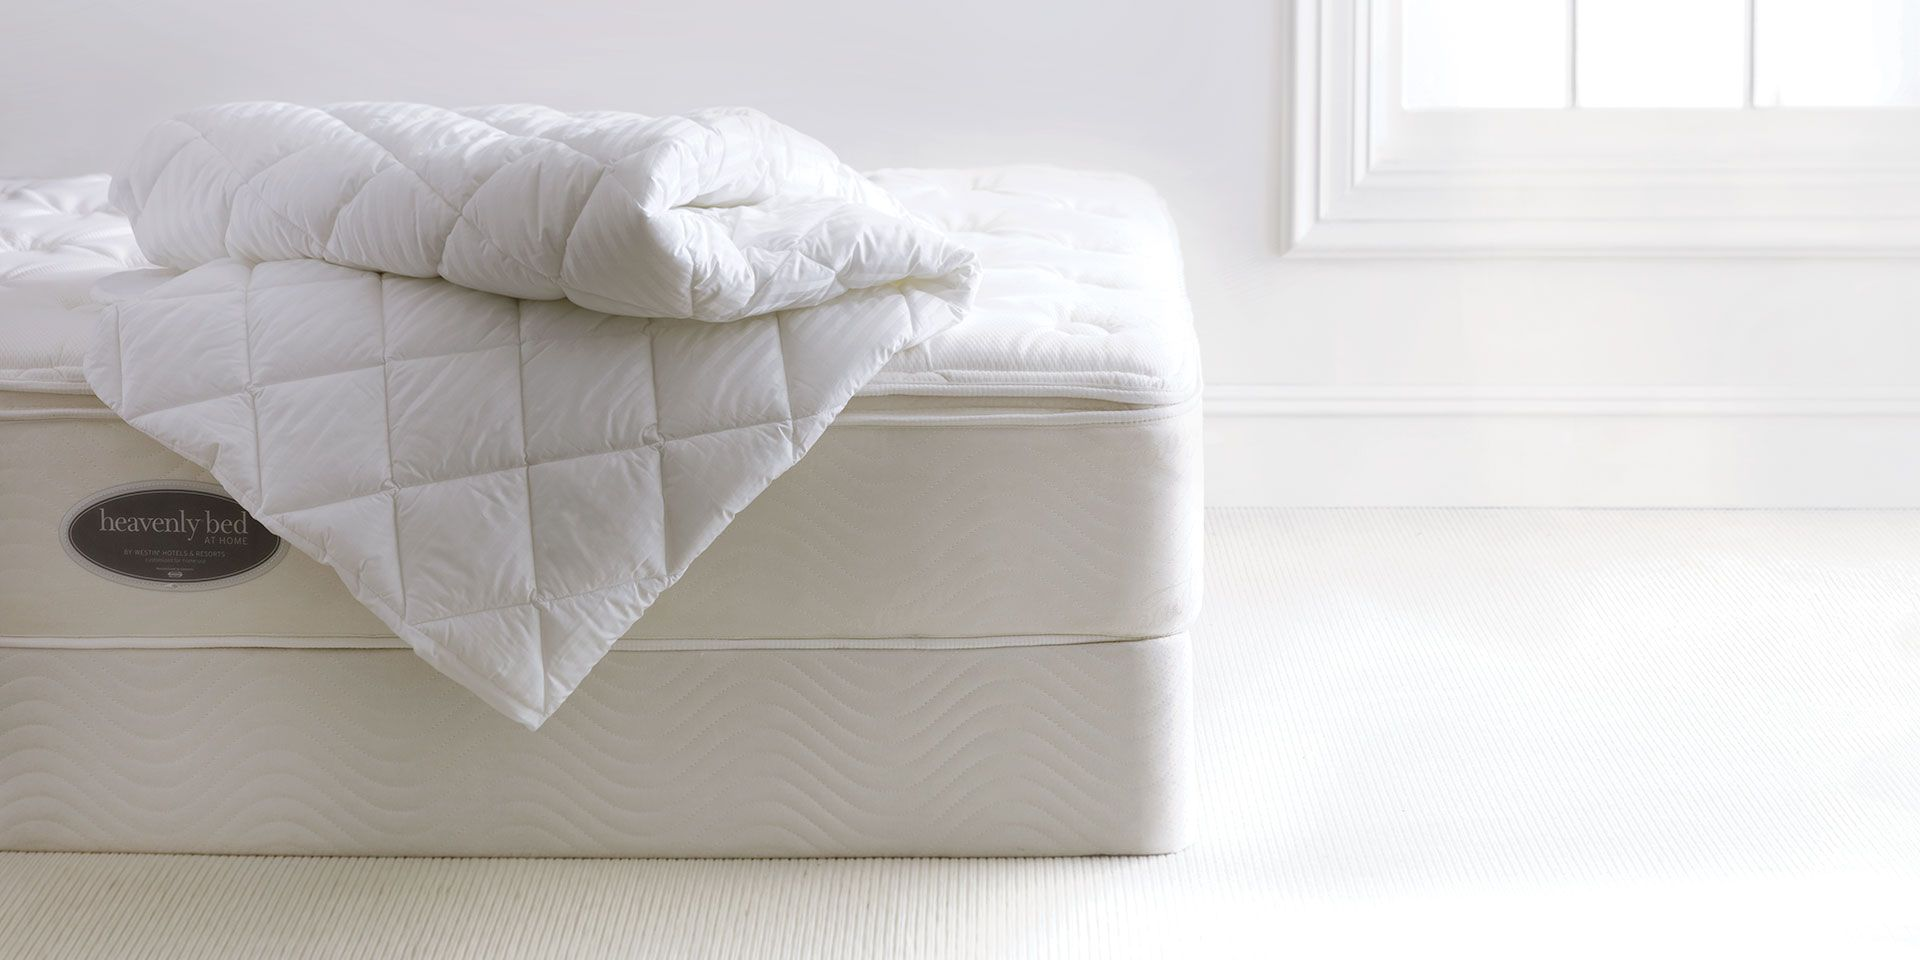 Learn how to choose the right mattress for a perfect night